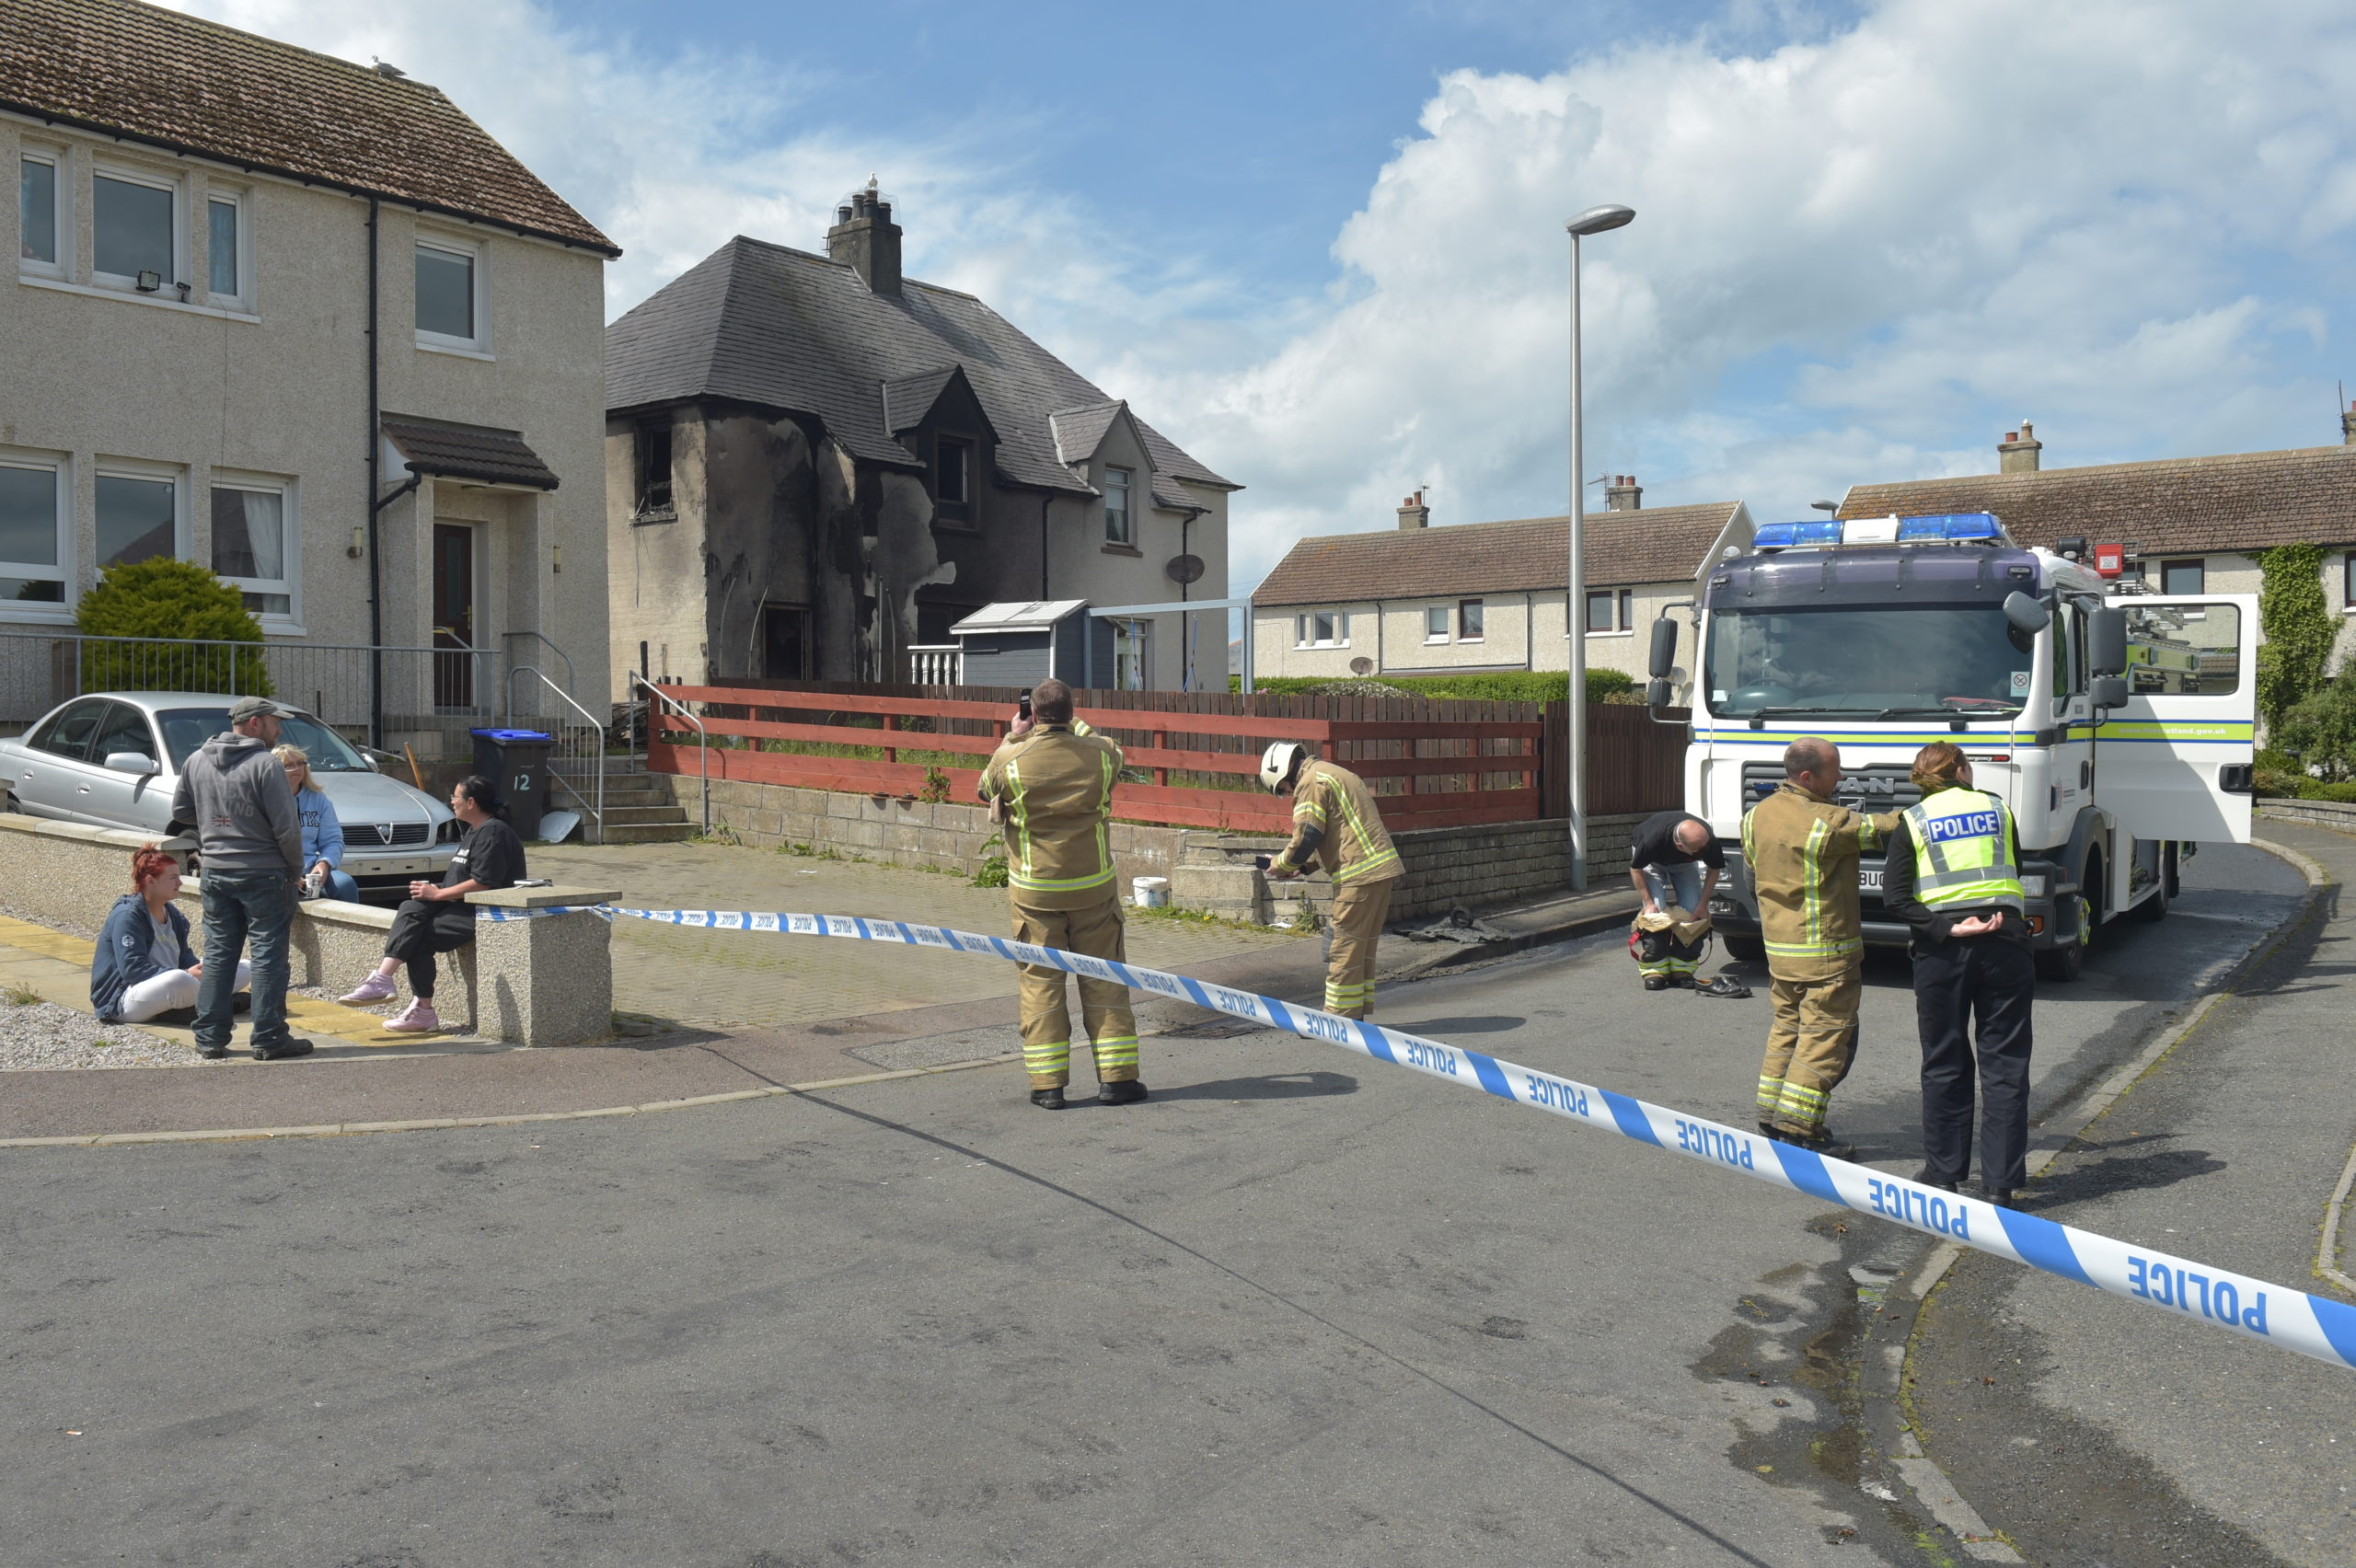 Emergency services at the scene of a fire on Seafield Road, Banff. Picture by Jason Hedges 09/06/2020